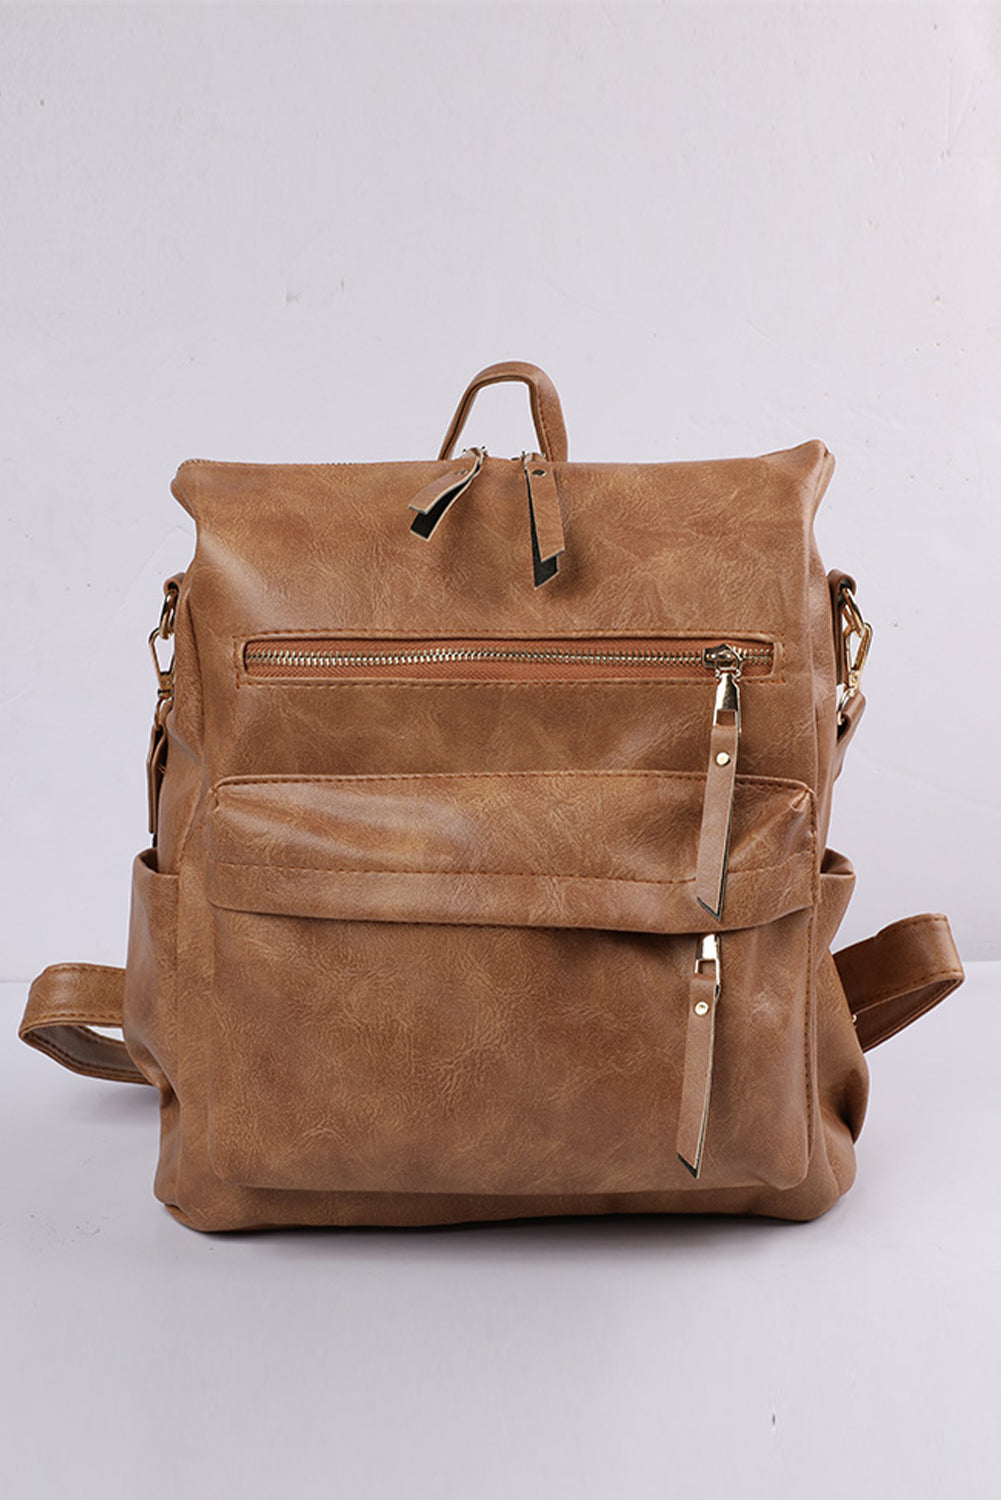 Brown Casual Versatile Backpack Bags Discount Designer Fashion Clothes Shoes Bags Women Men Kids Children Black Owned Business